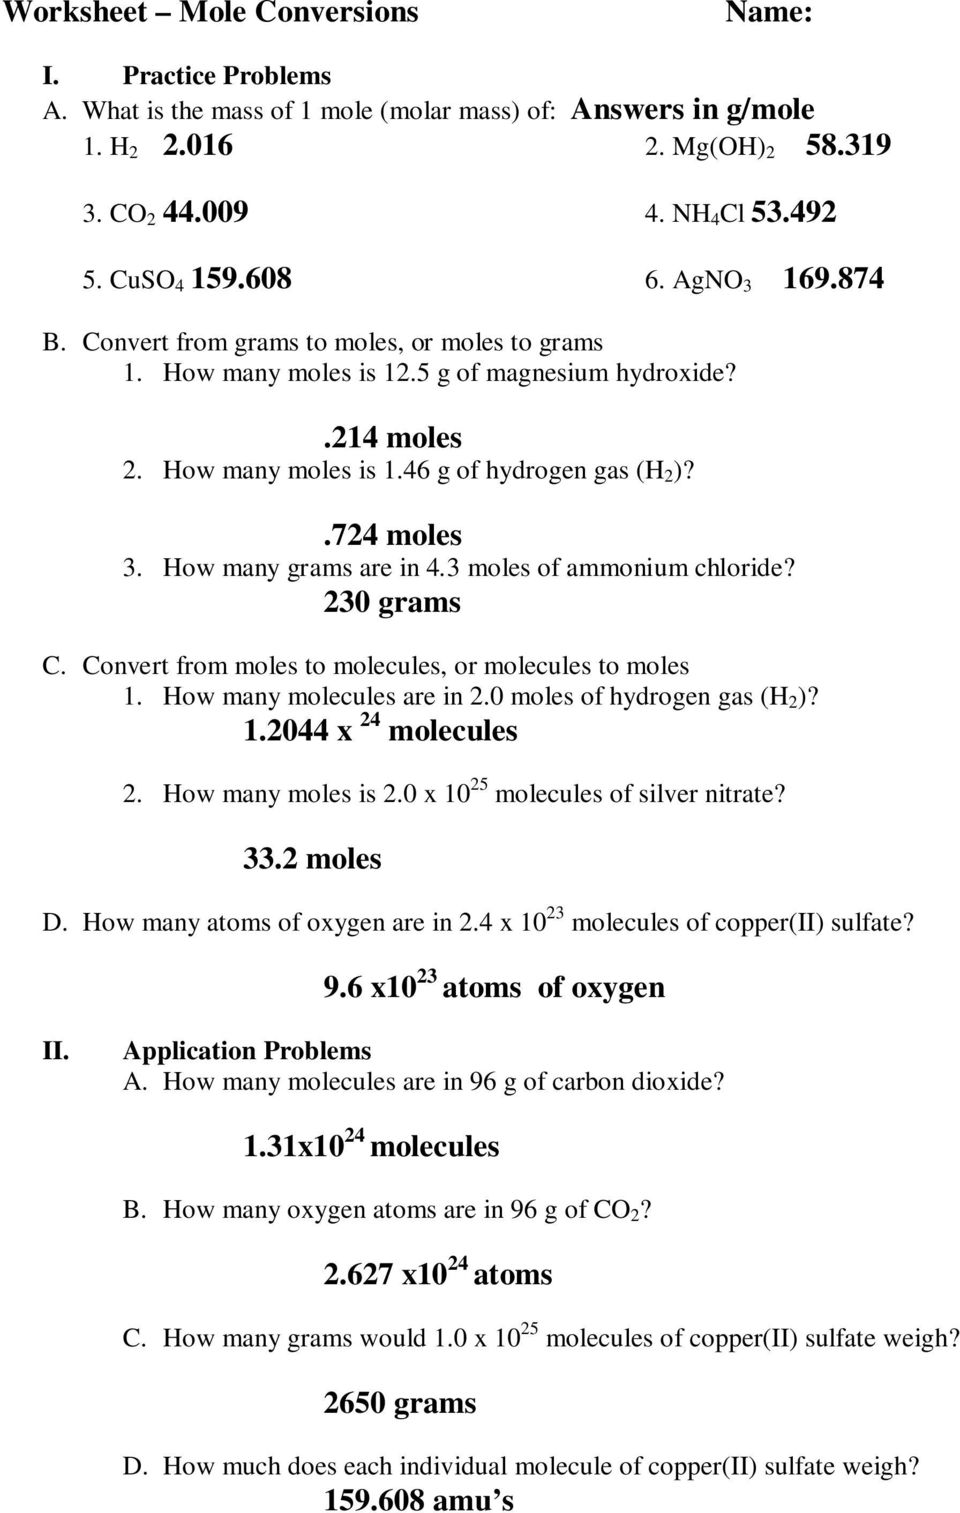 17851164 Moles Molecules And Grams Worksheet Answer Key on Moles Molecules And Grams Worksheet